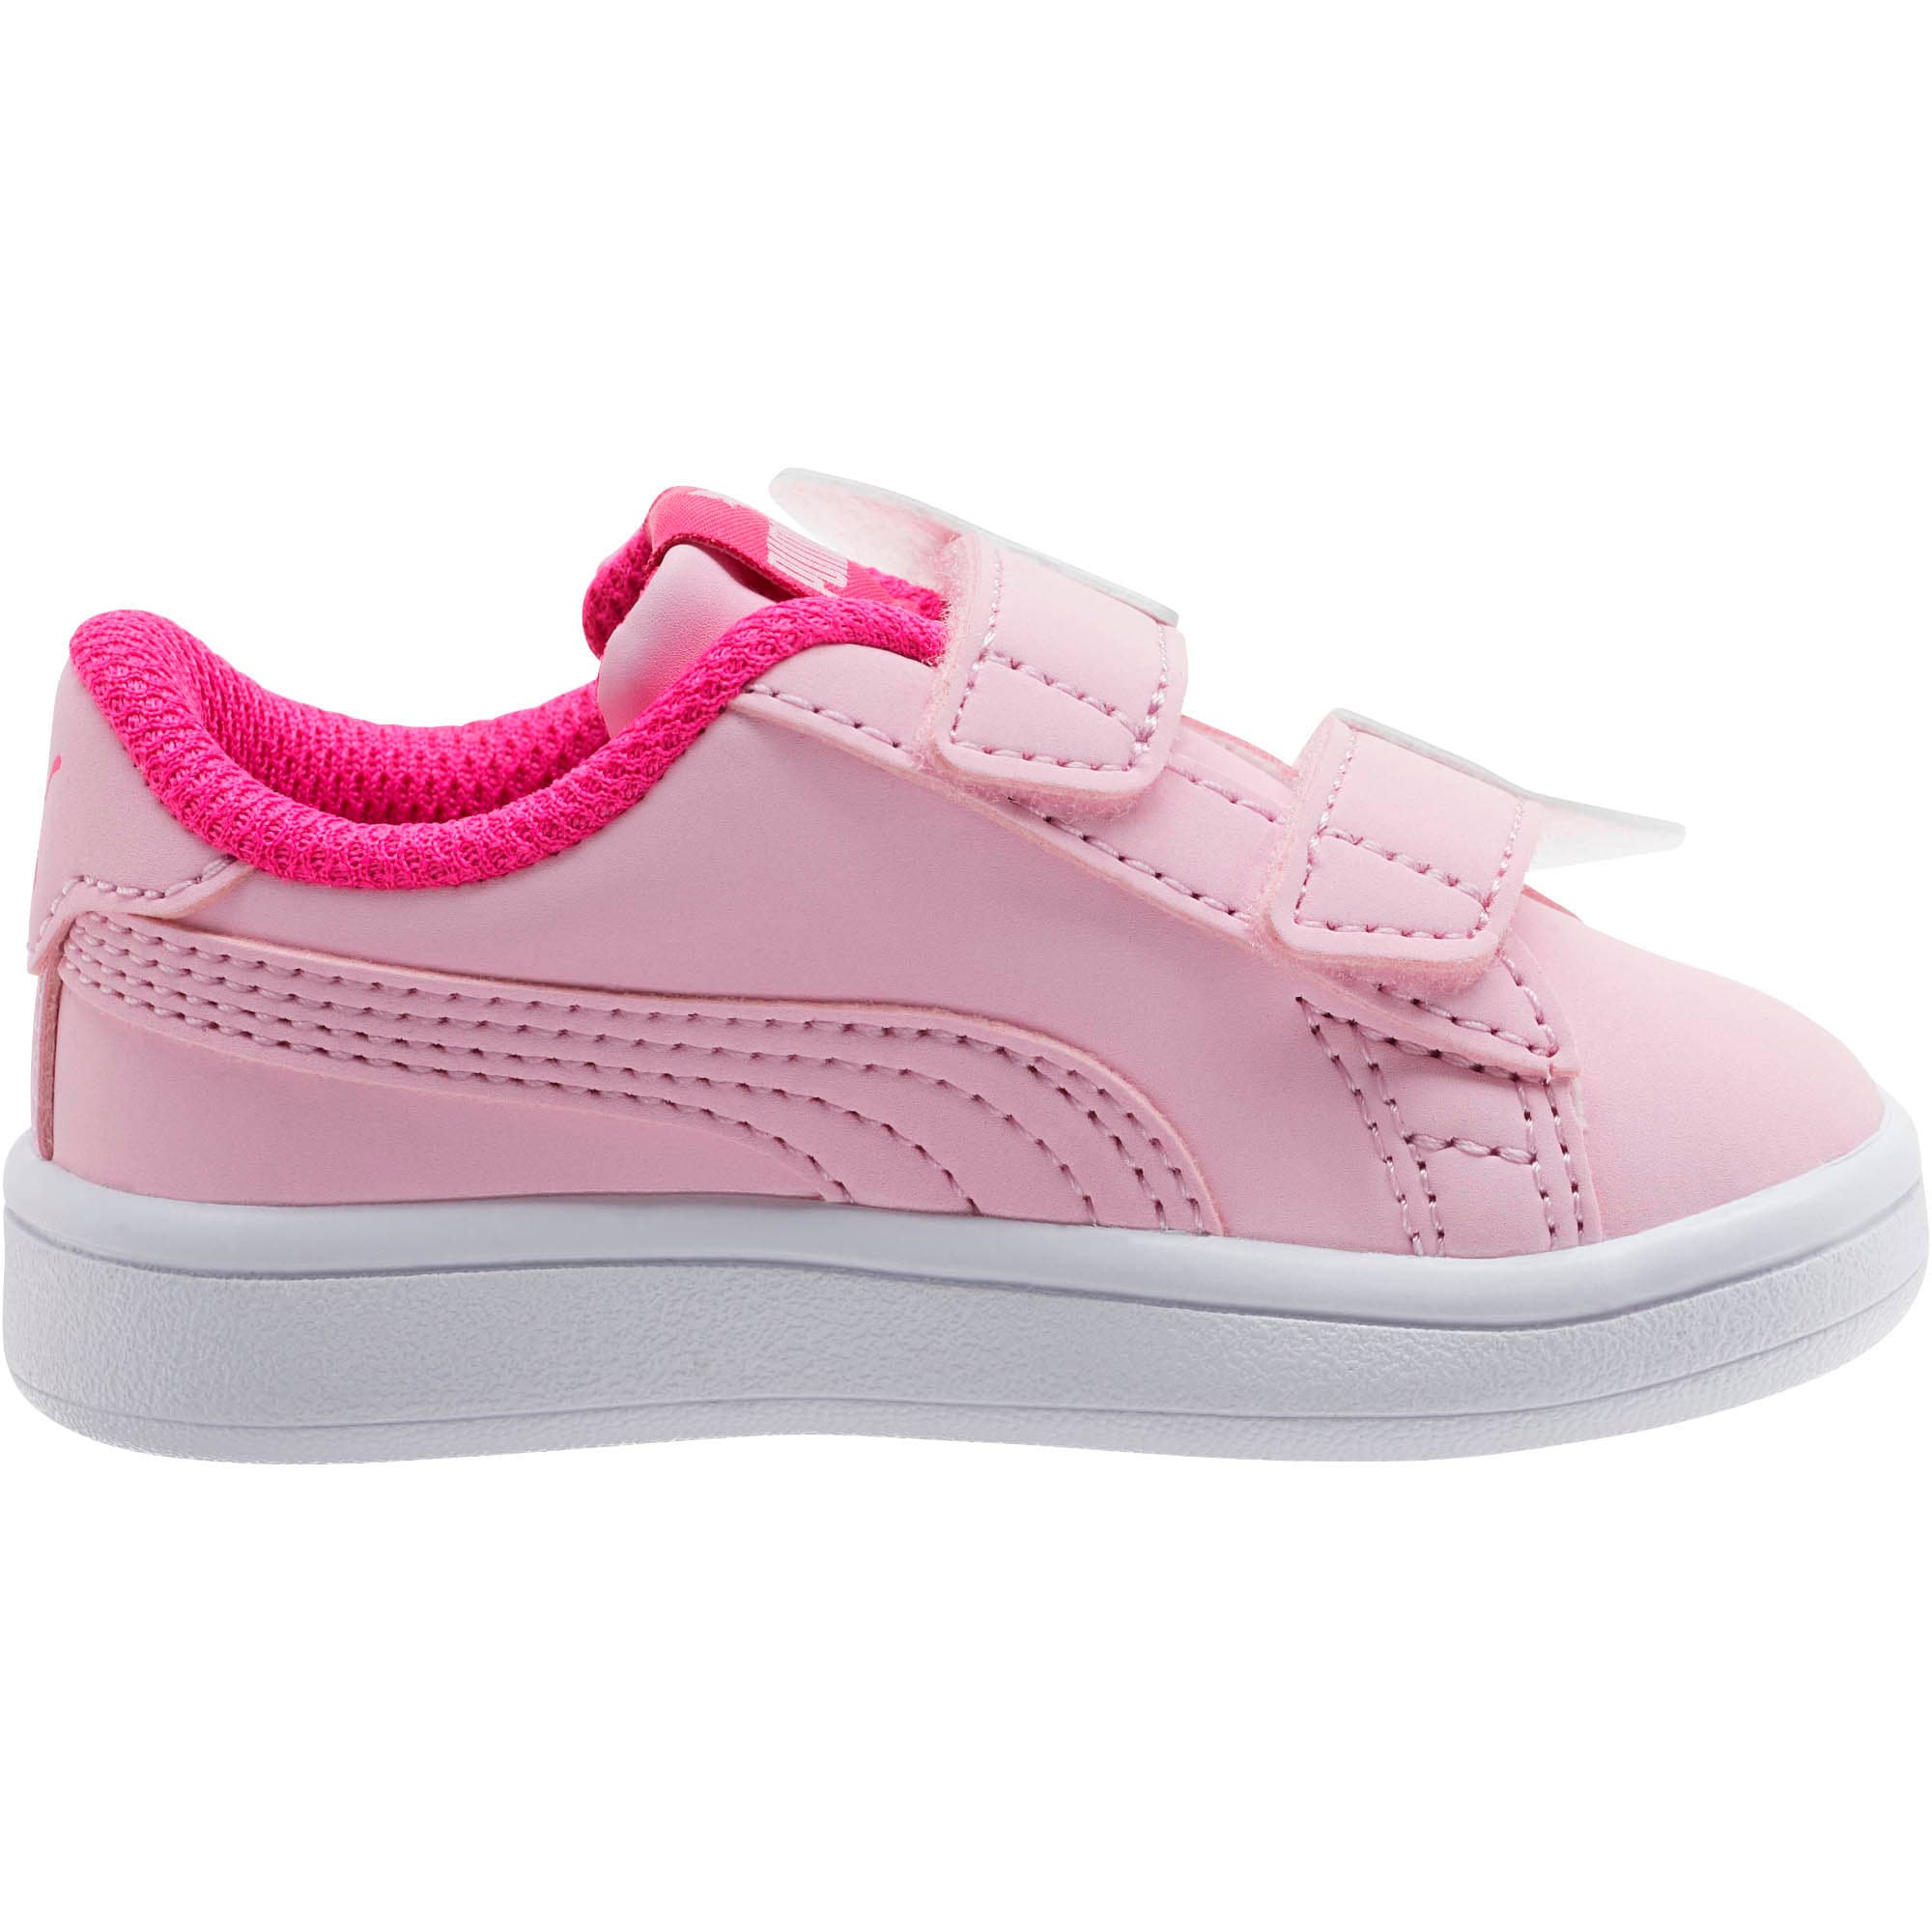 Thumbnail 4 of PUMA Smash v2 Butterfly AC Toddler Shoes, Pale Pink-F Purple-White, medium